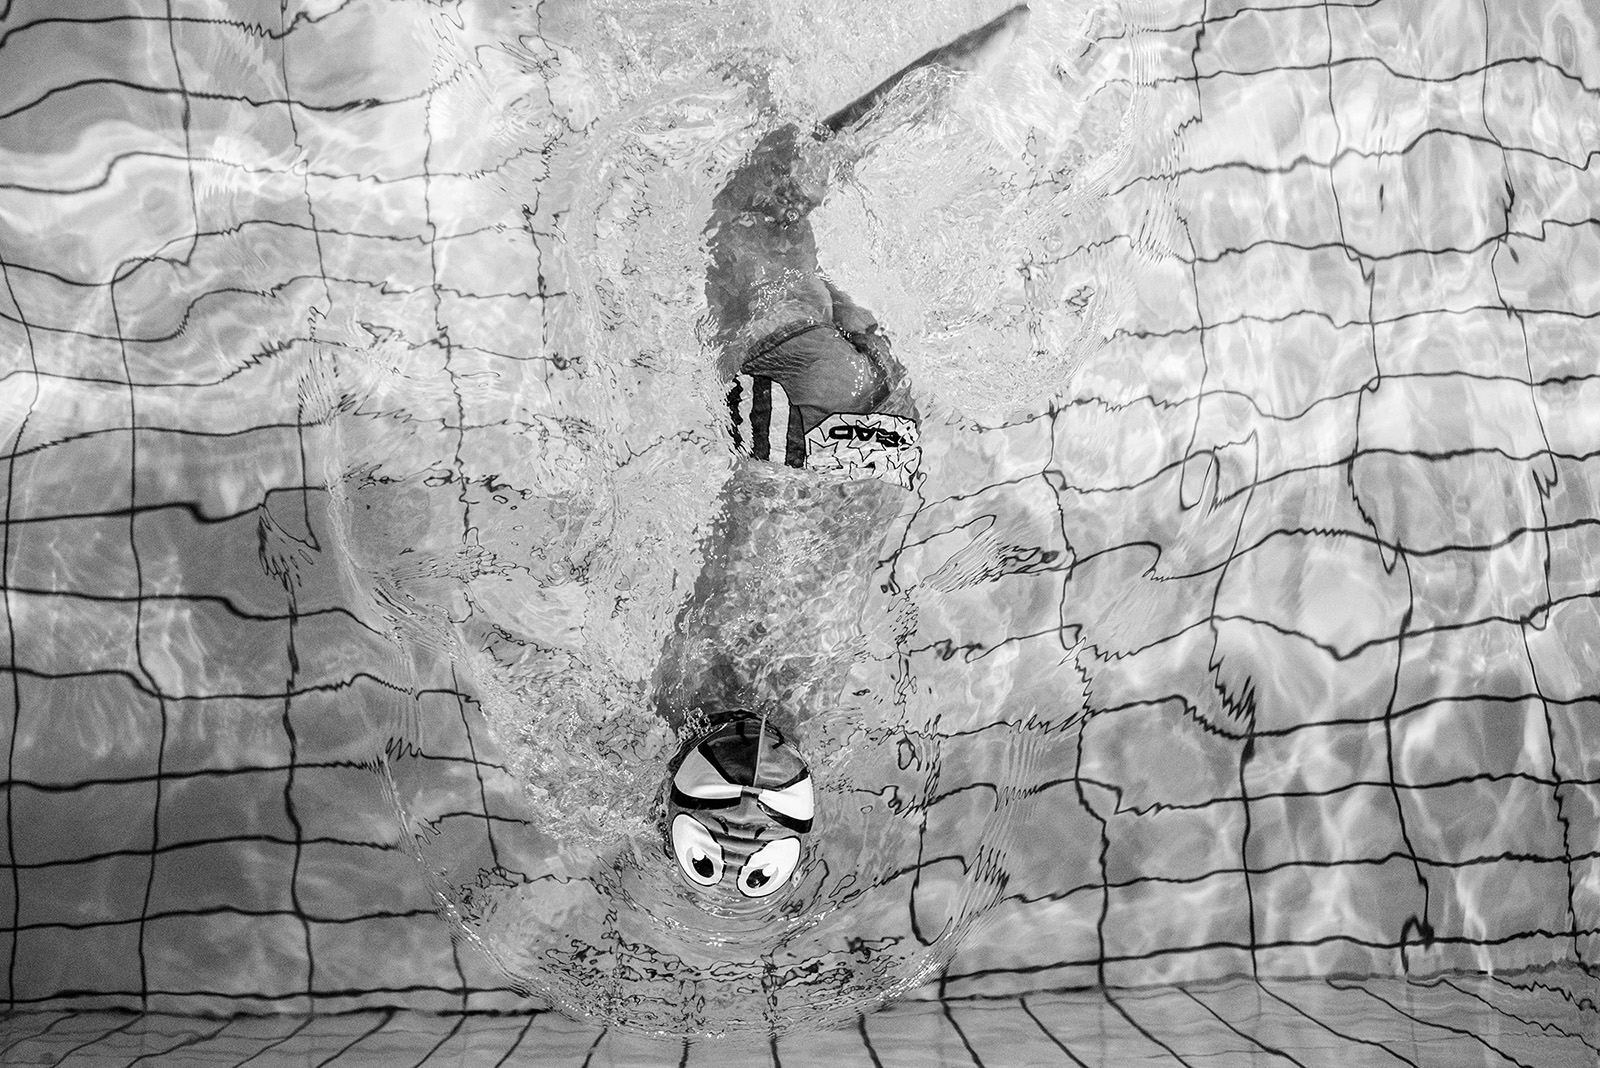 Ismail during the training at the Olympic Pool in Sarajevo.